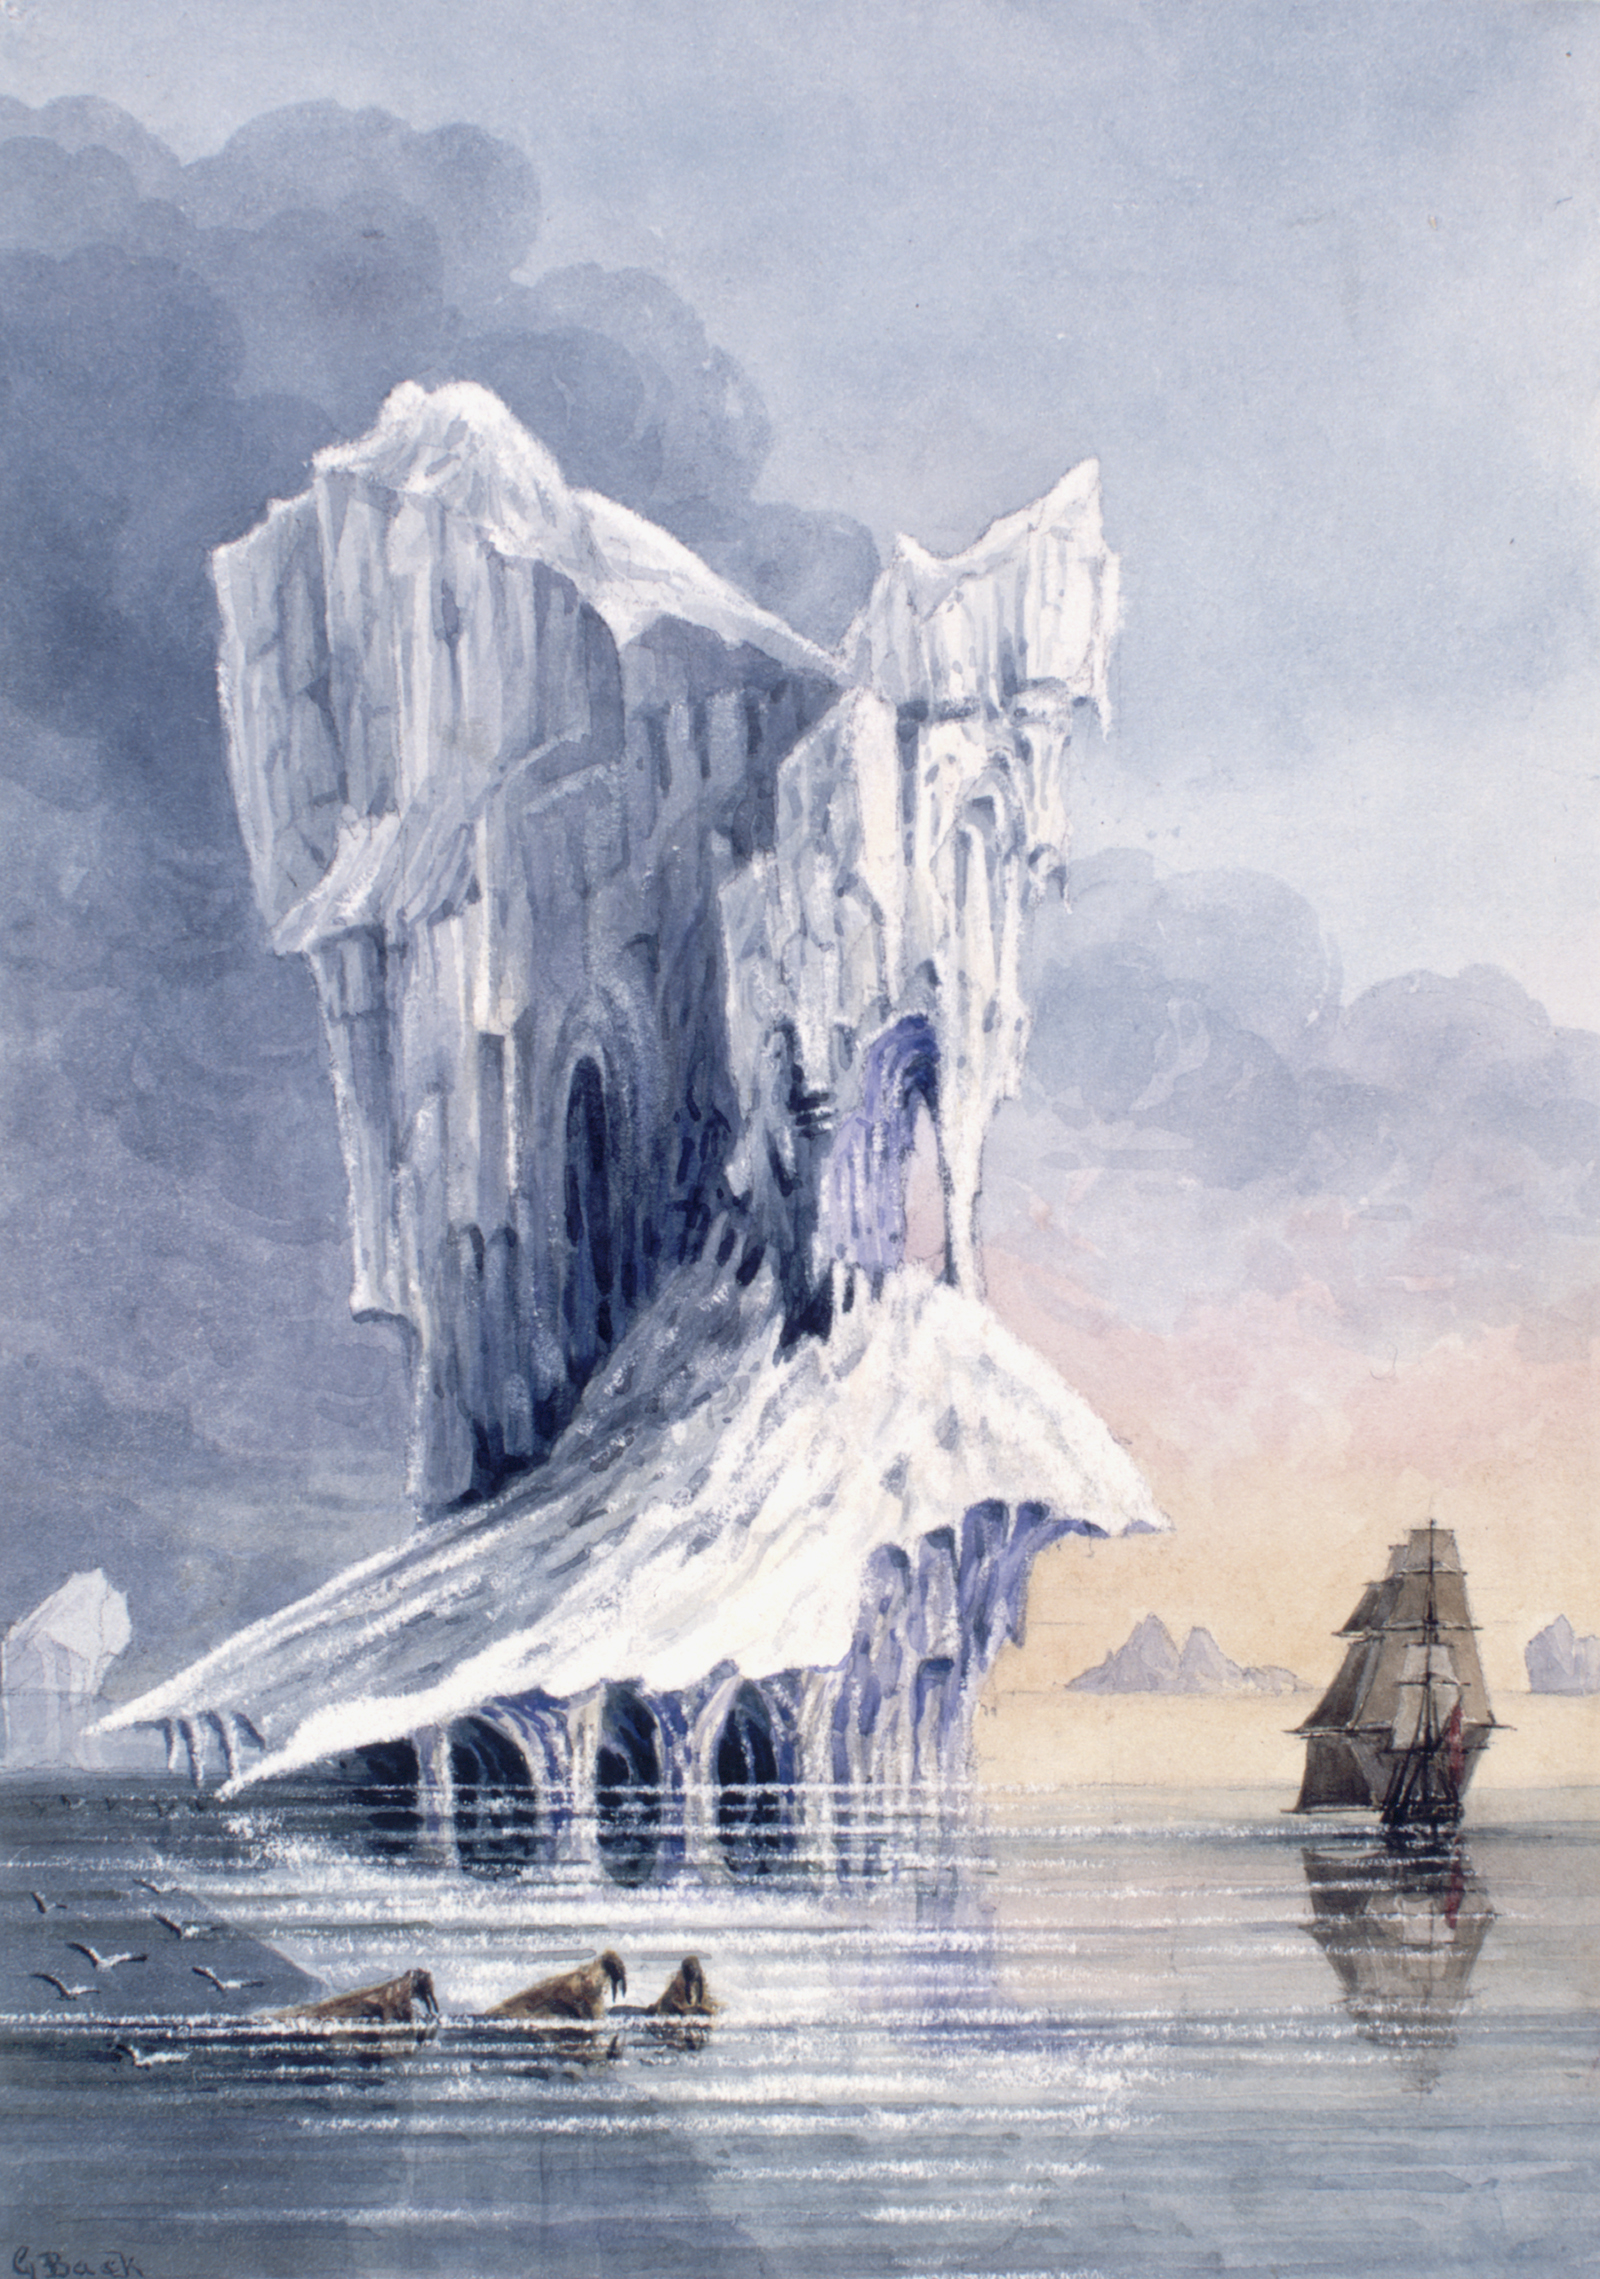 An iceberg, the HMS Terror and some walrus near the entrance of Hudson Strait